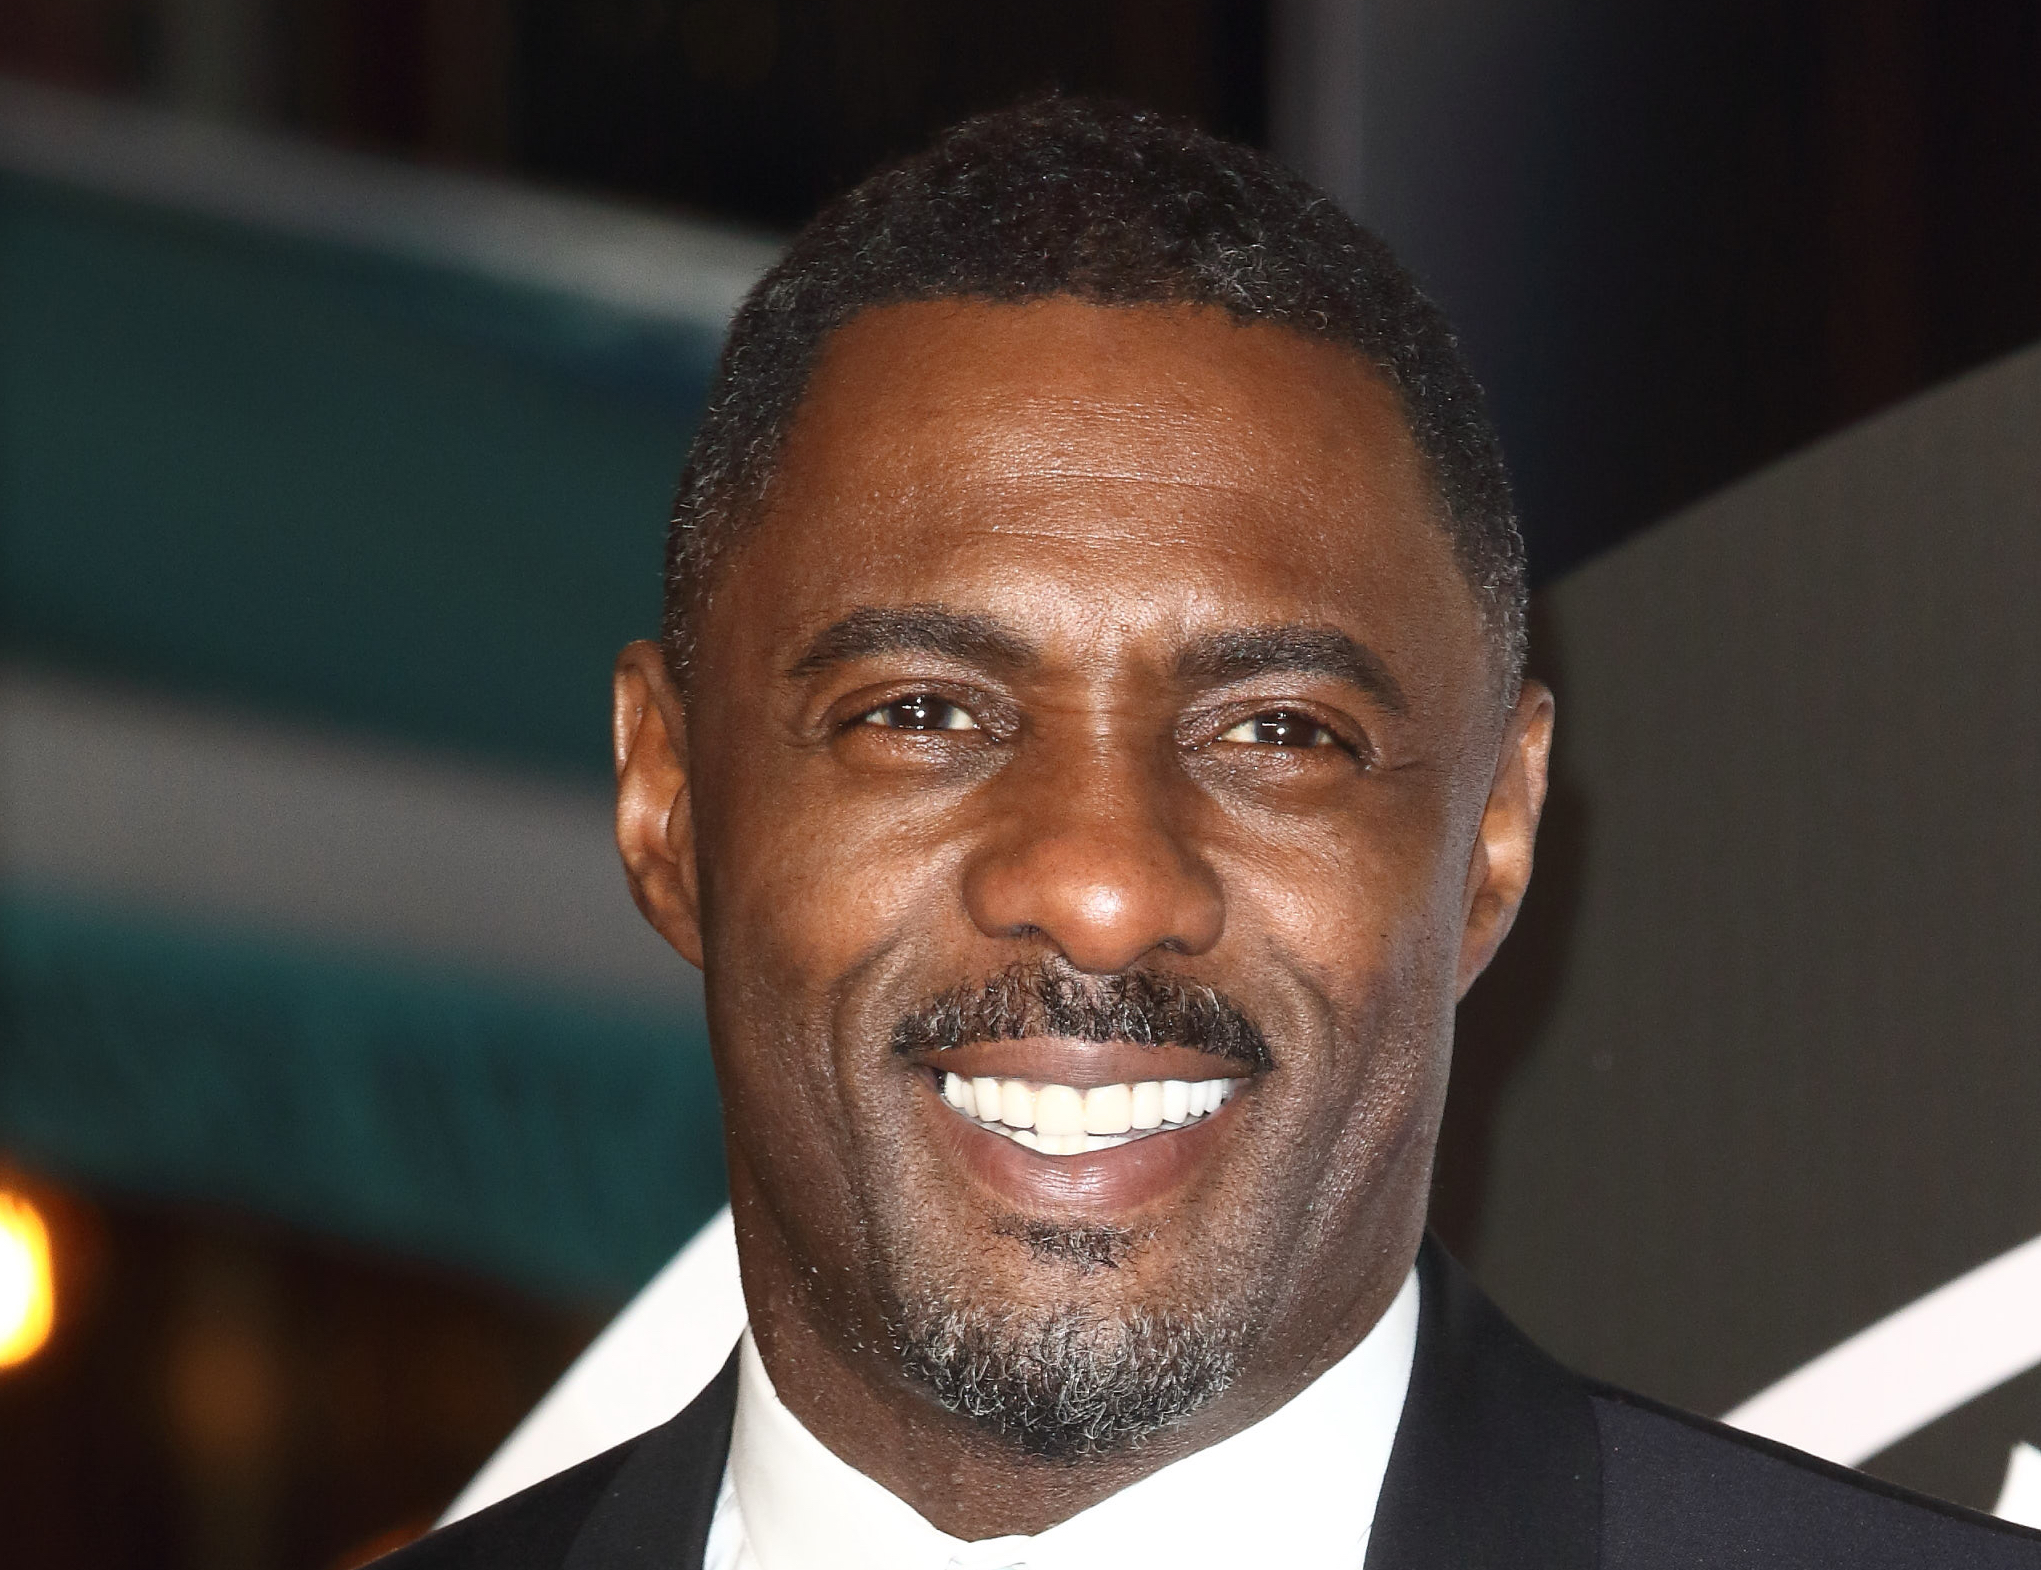 Sorry La S But Weve Got Some Bad News For Ya Regarding Actor Idris Elba Actually You Already Know What The News Is Since You Read The Headline